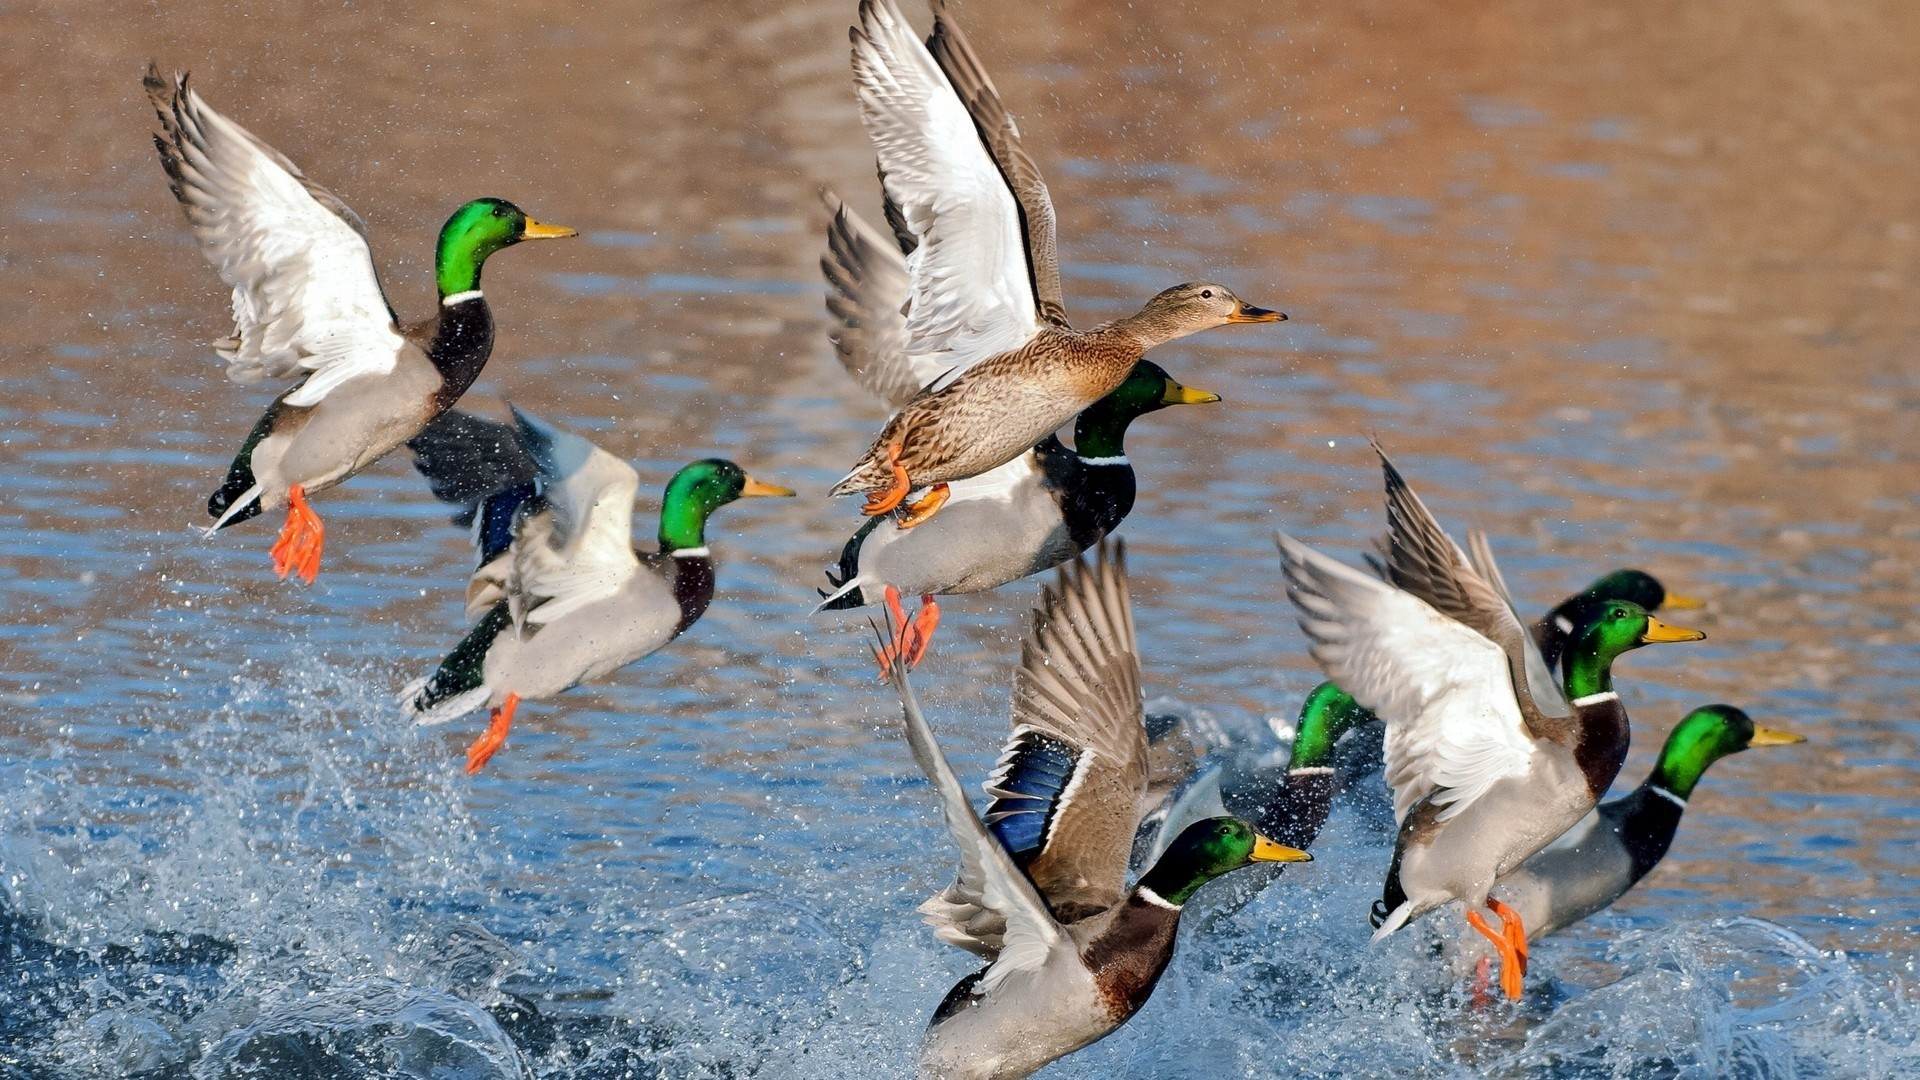 1920x1080 animals HD Wallpaper Desktop Background | Ducks & Geese | Pinterest |  Desktop backgrounds, Animal wallpaper and Animal